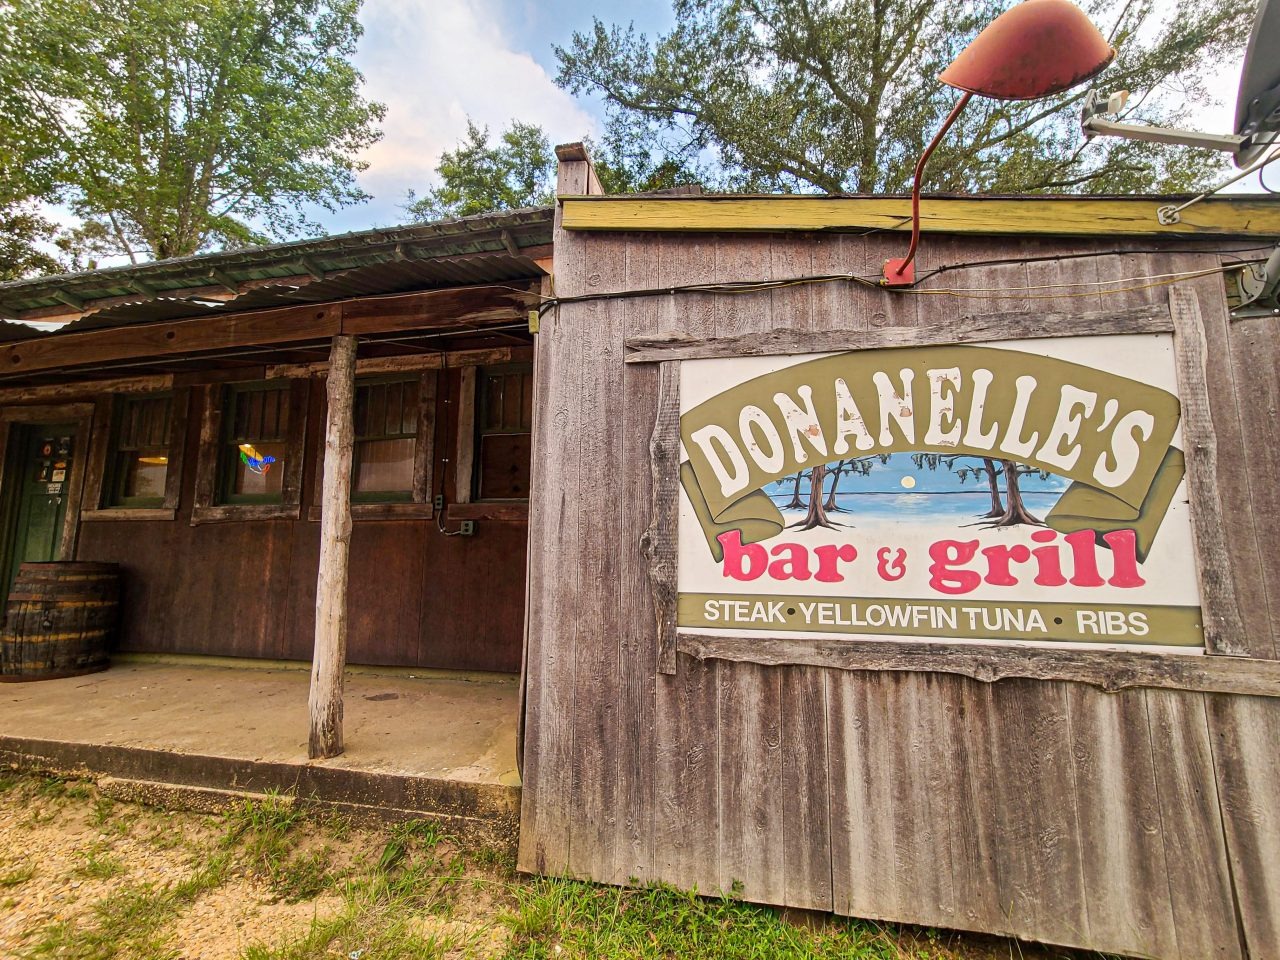 Donanelle's-bar and grill